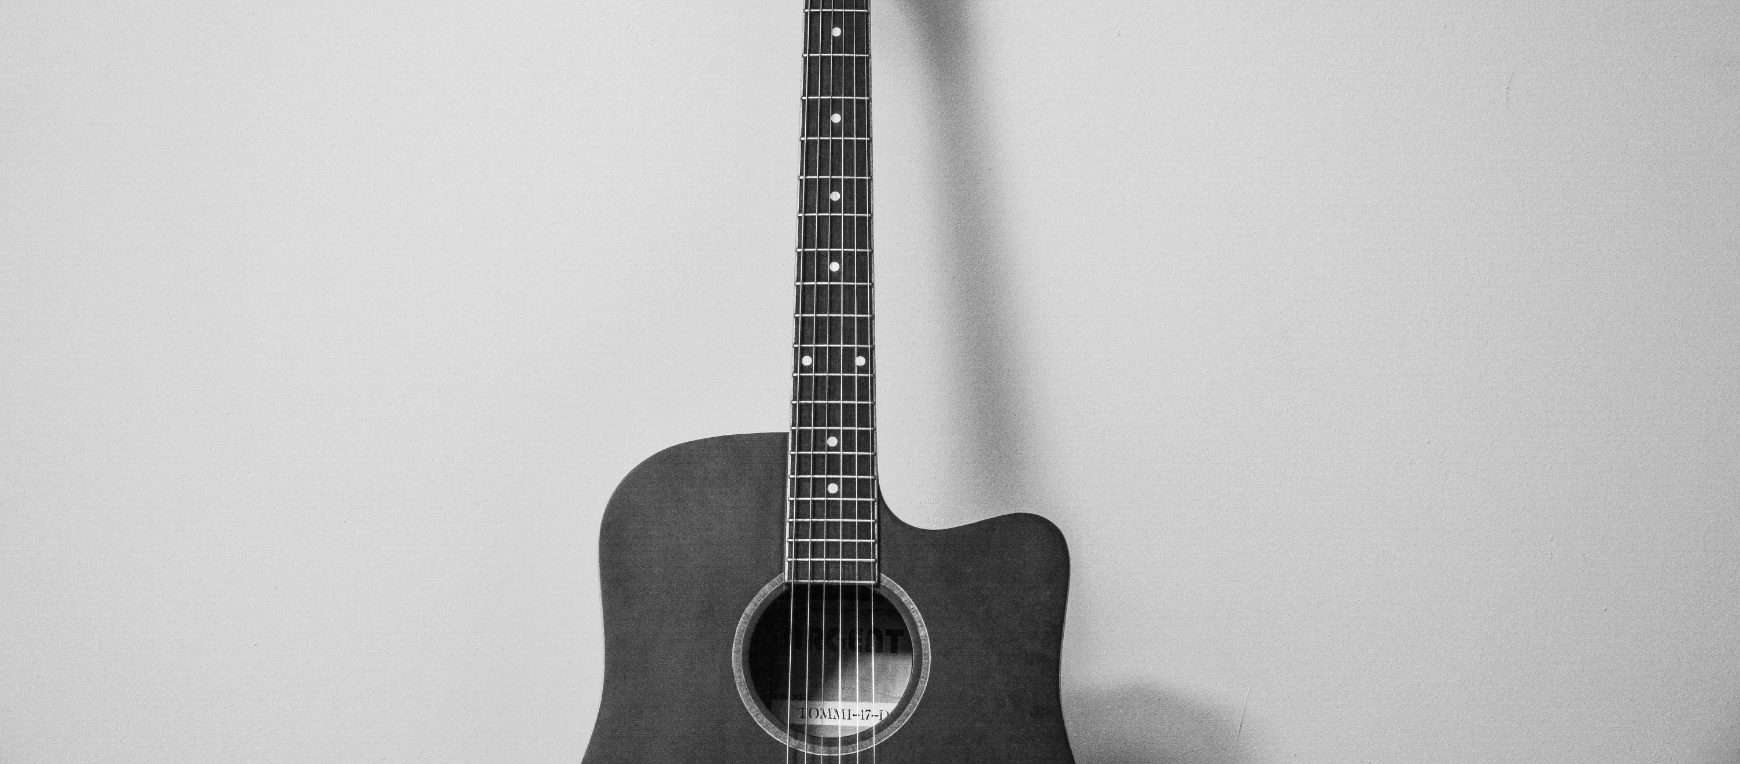 Most Expensive Guitars Ever Sold: The Top 10